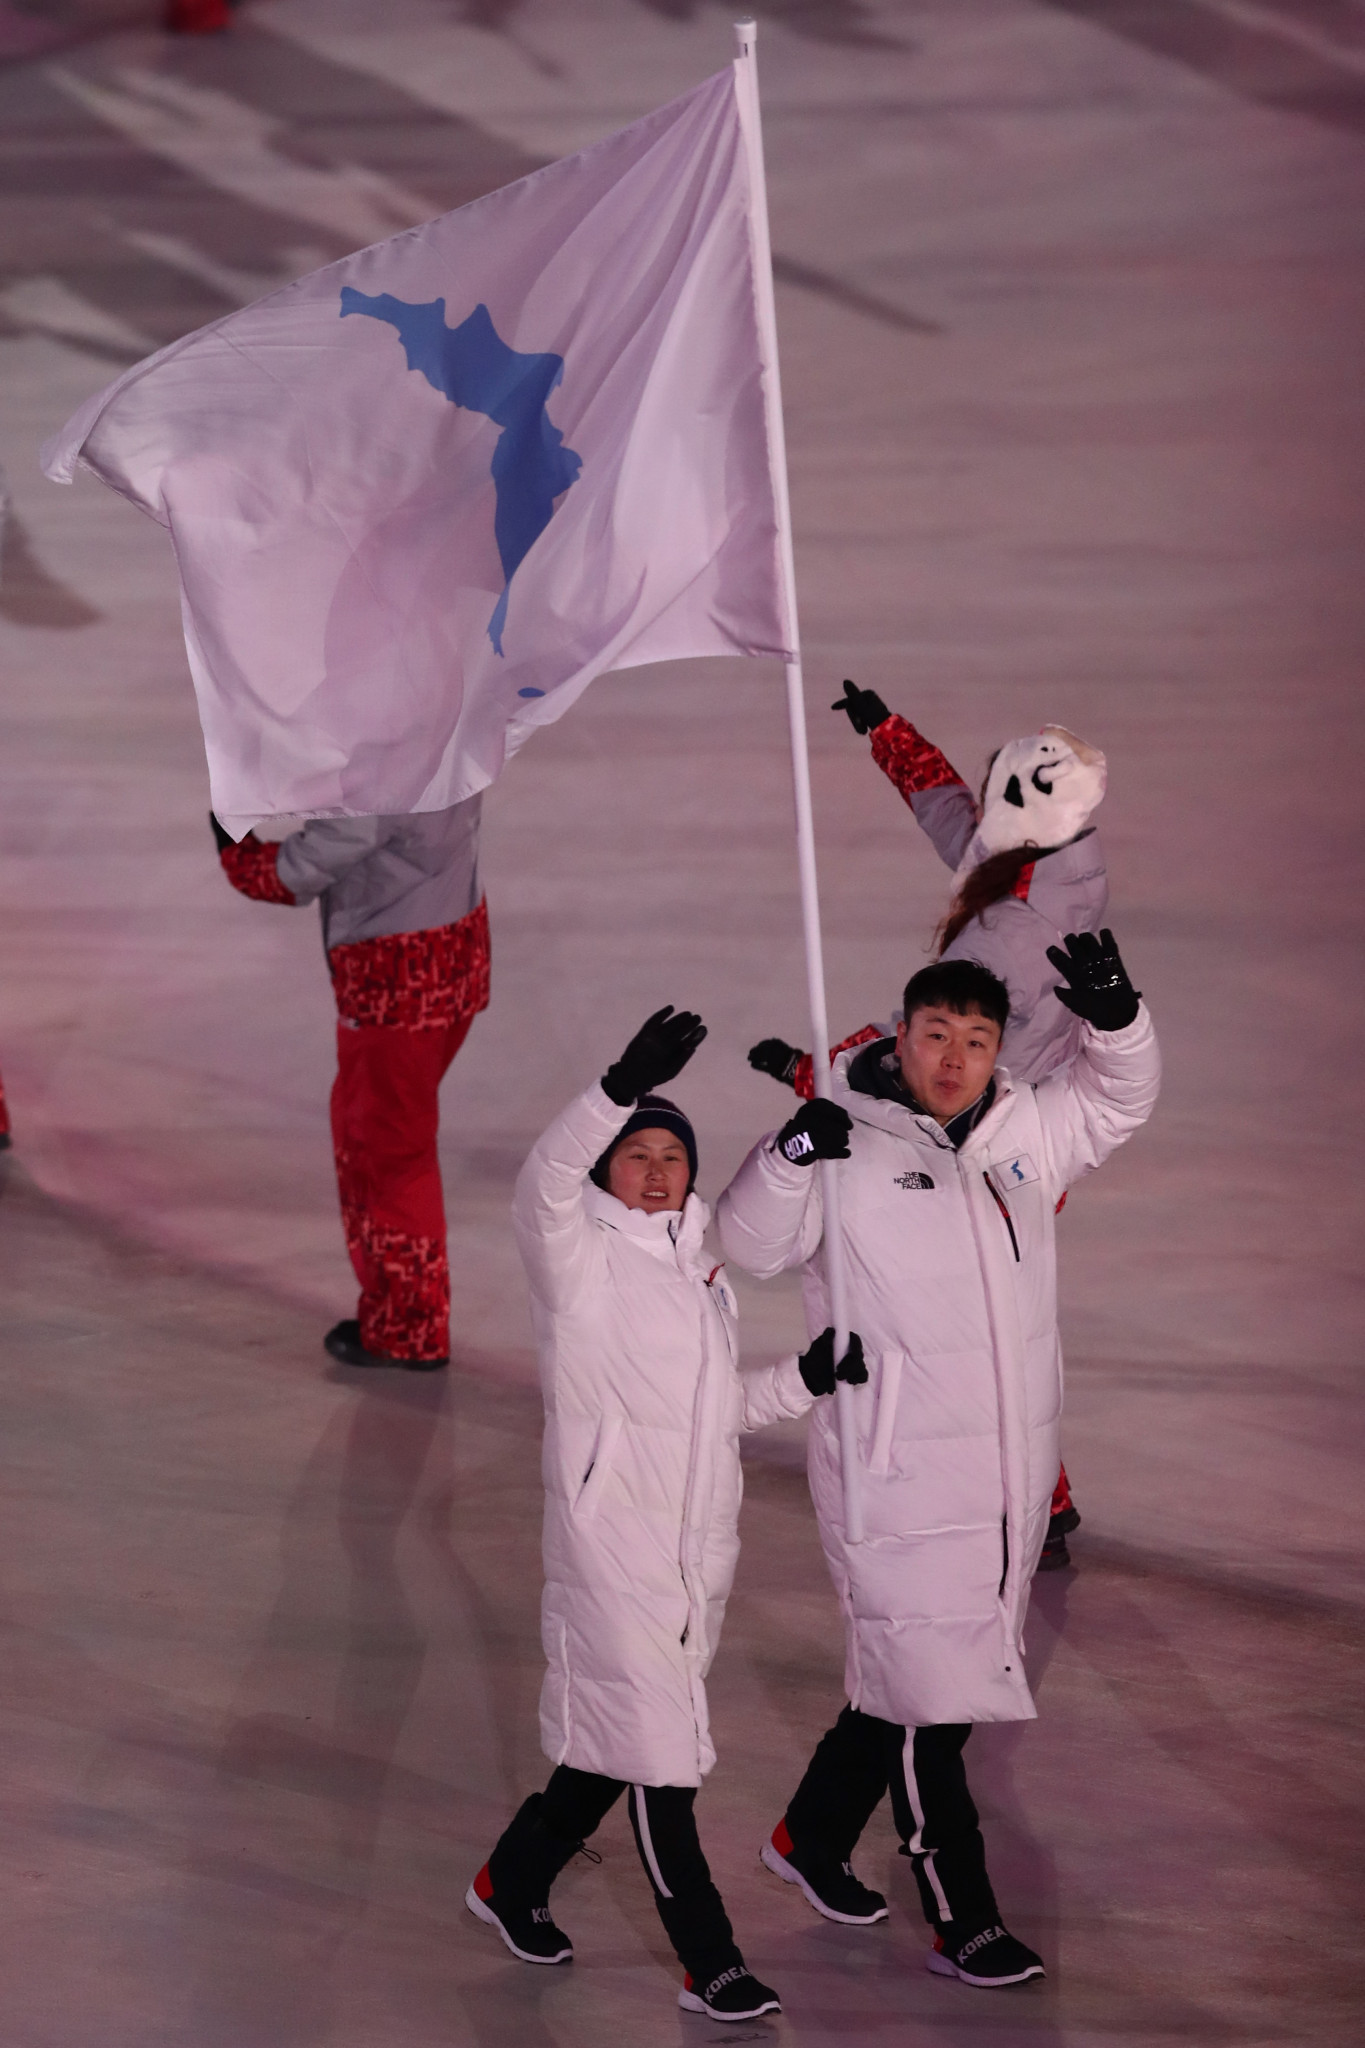 North and South Korea marched together at the Opening Ceremony of the 2018 Winter Olympic Games in Pyeongchang and formed an unified women's ice hockey team ©Getty Images